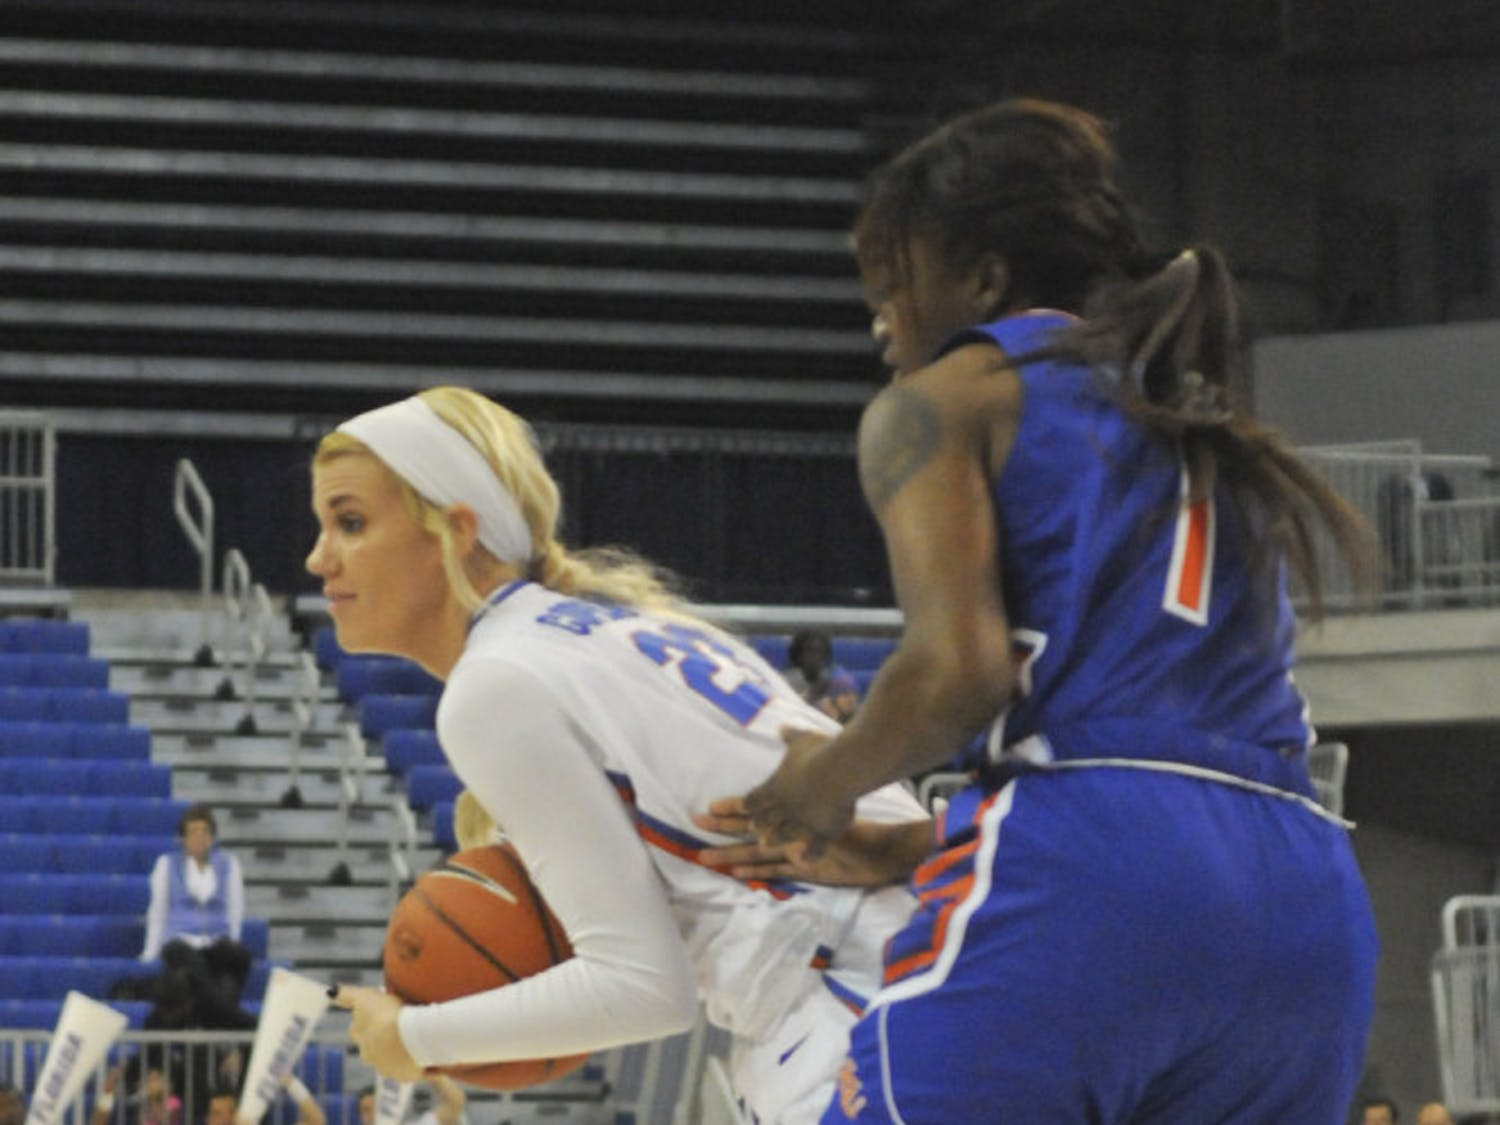 UF guard Brooke Copeland drives into the paint during Florida's win against Savannah State on Nov. 24, 2015.